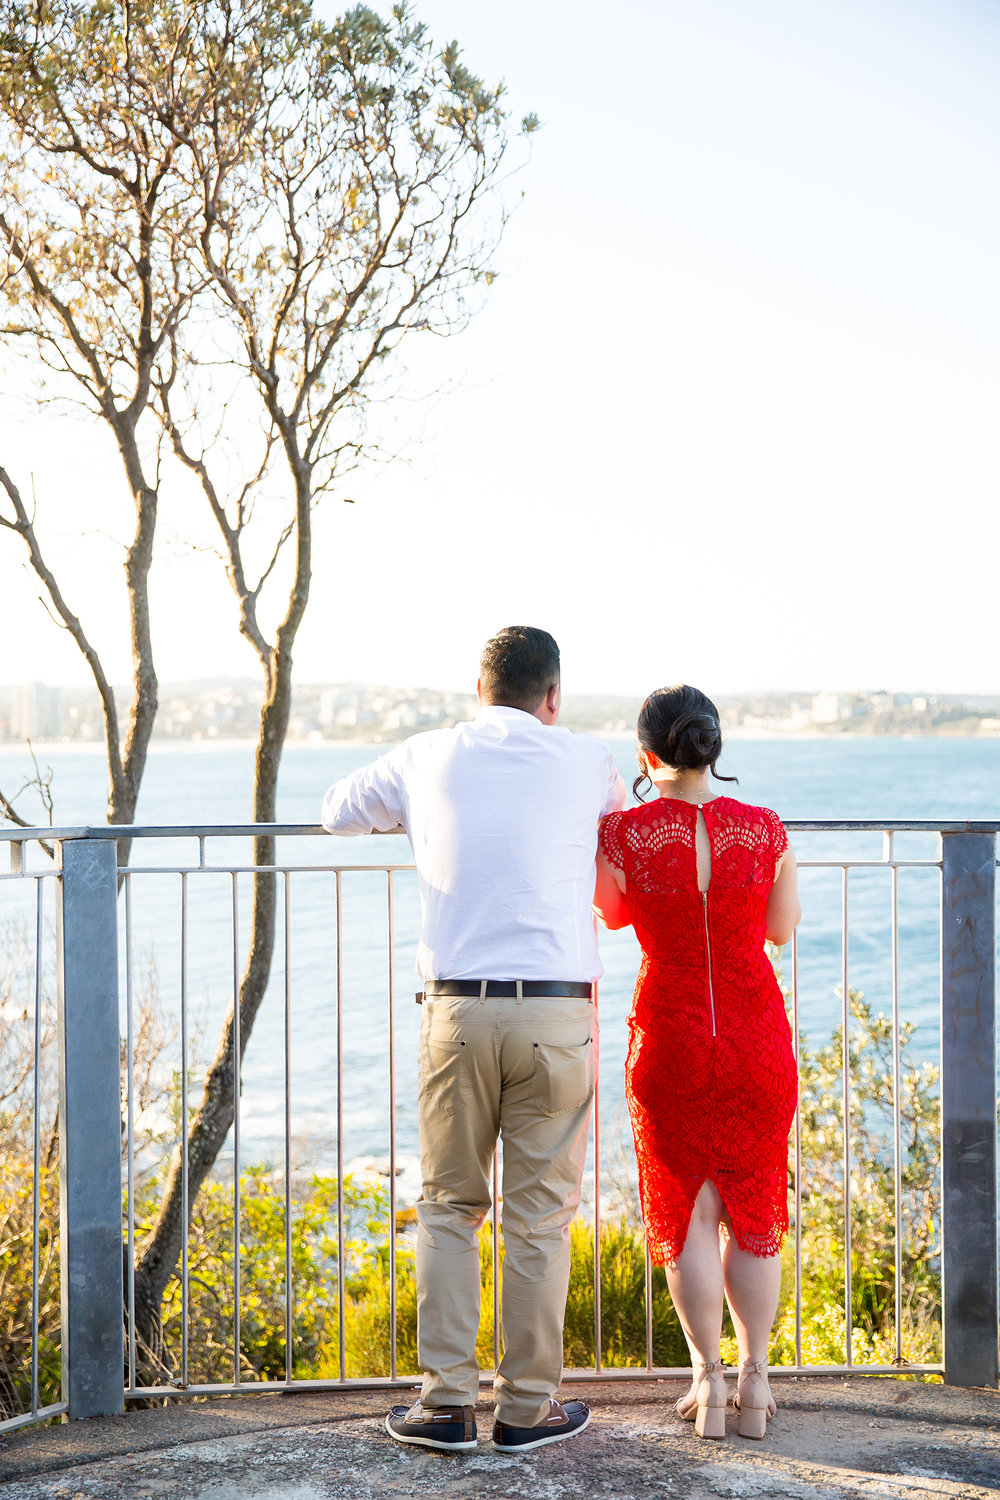 Shelly Beach Manly Pre-Wedding Engagement Session - jennifer Lam Photography (3).jpg